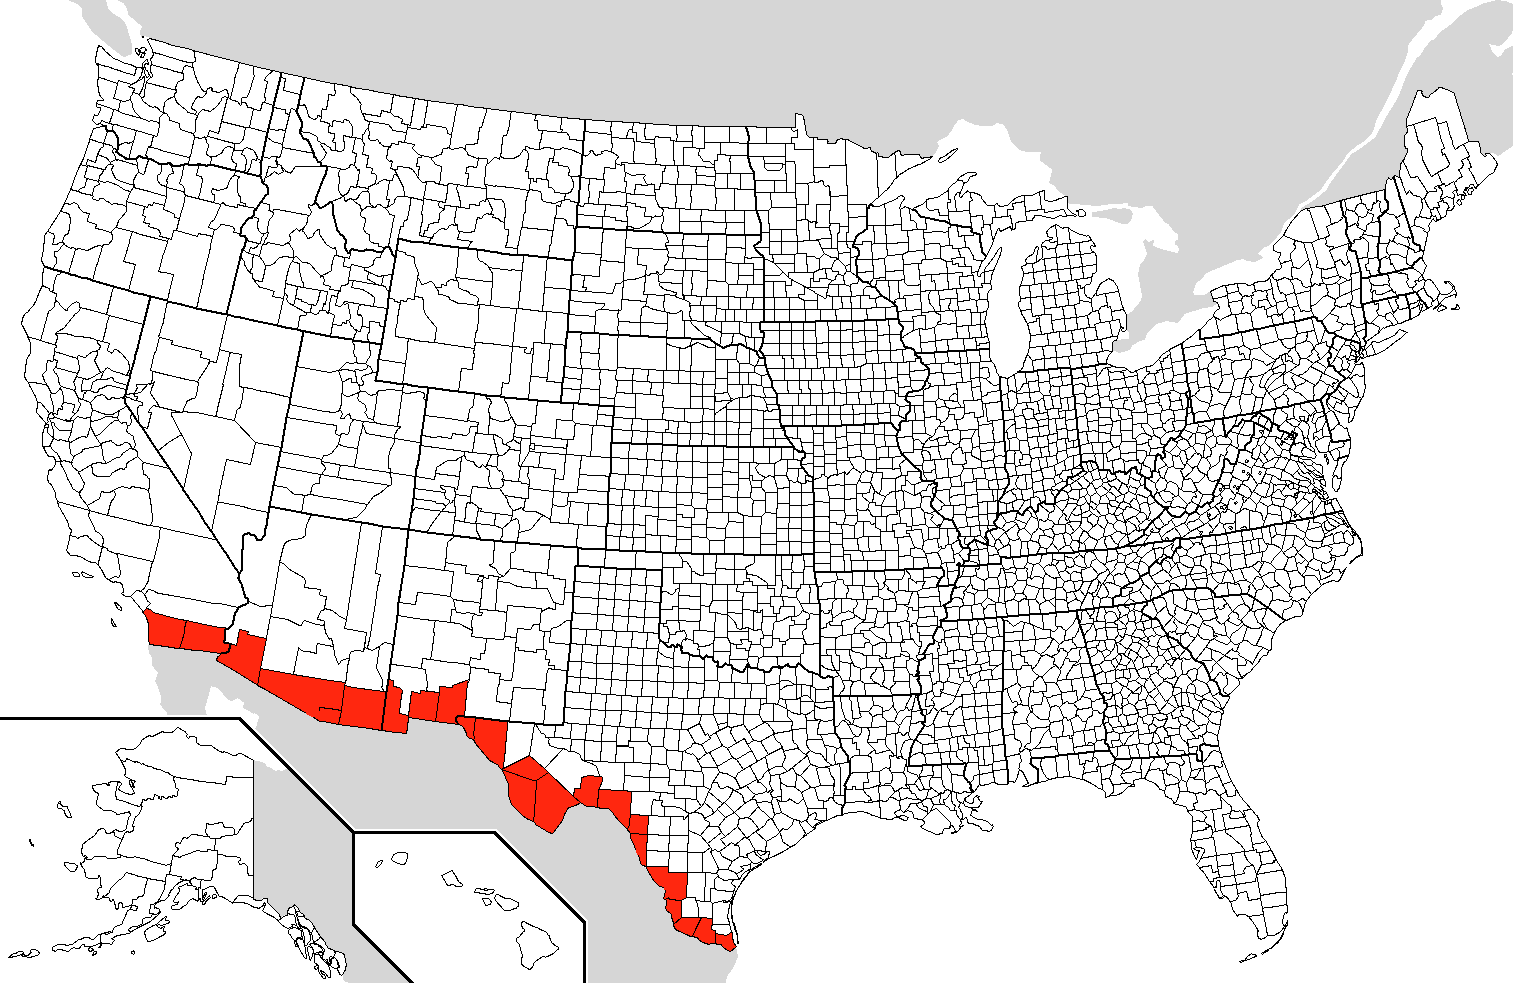 Mexico–United States border